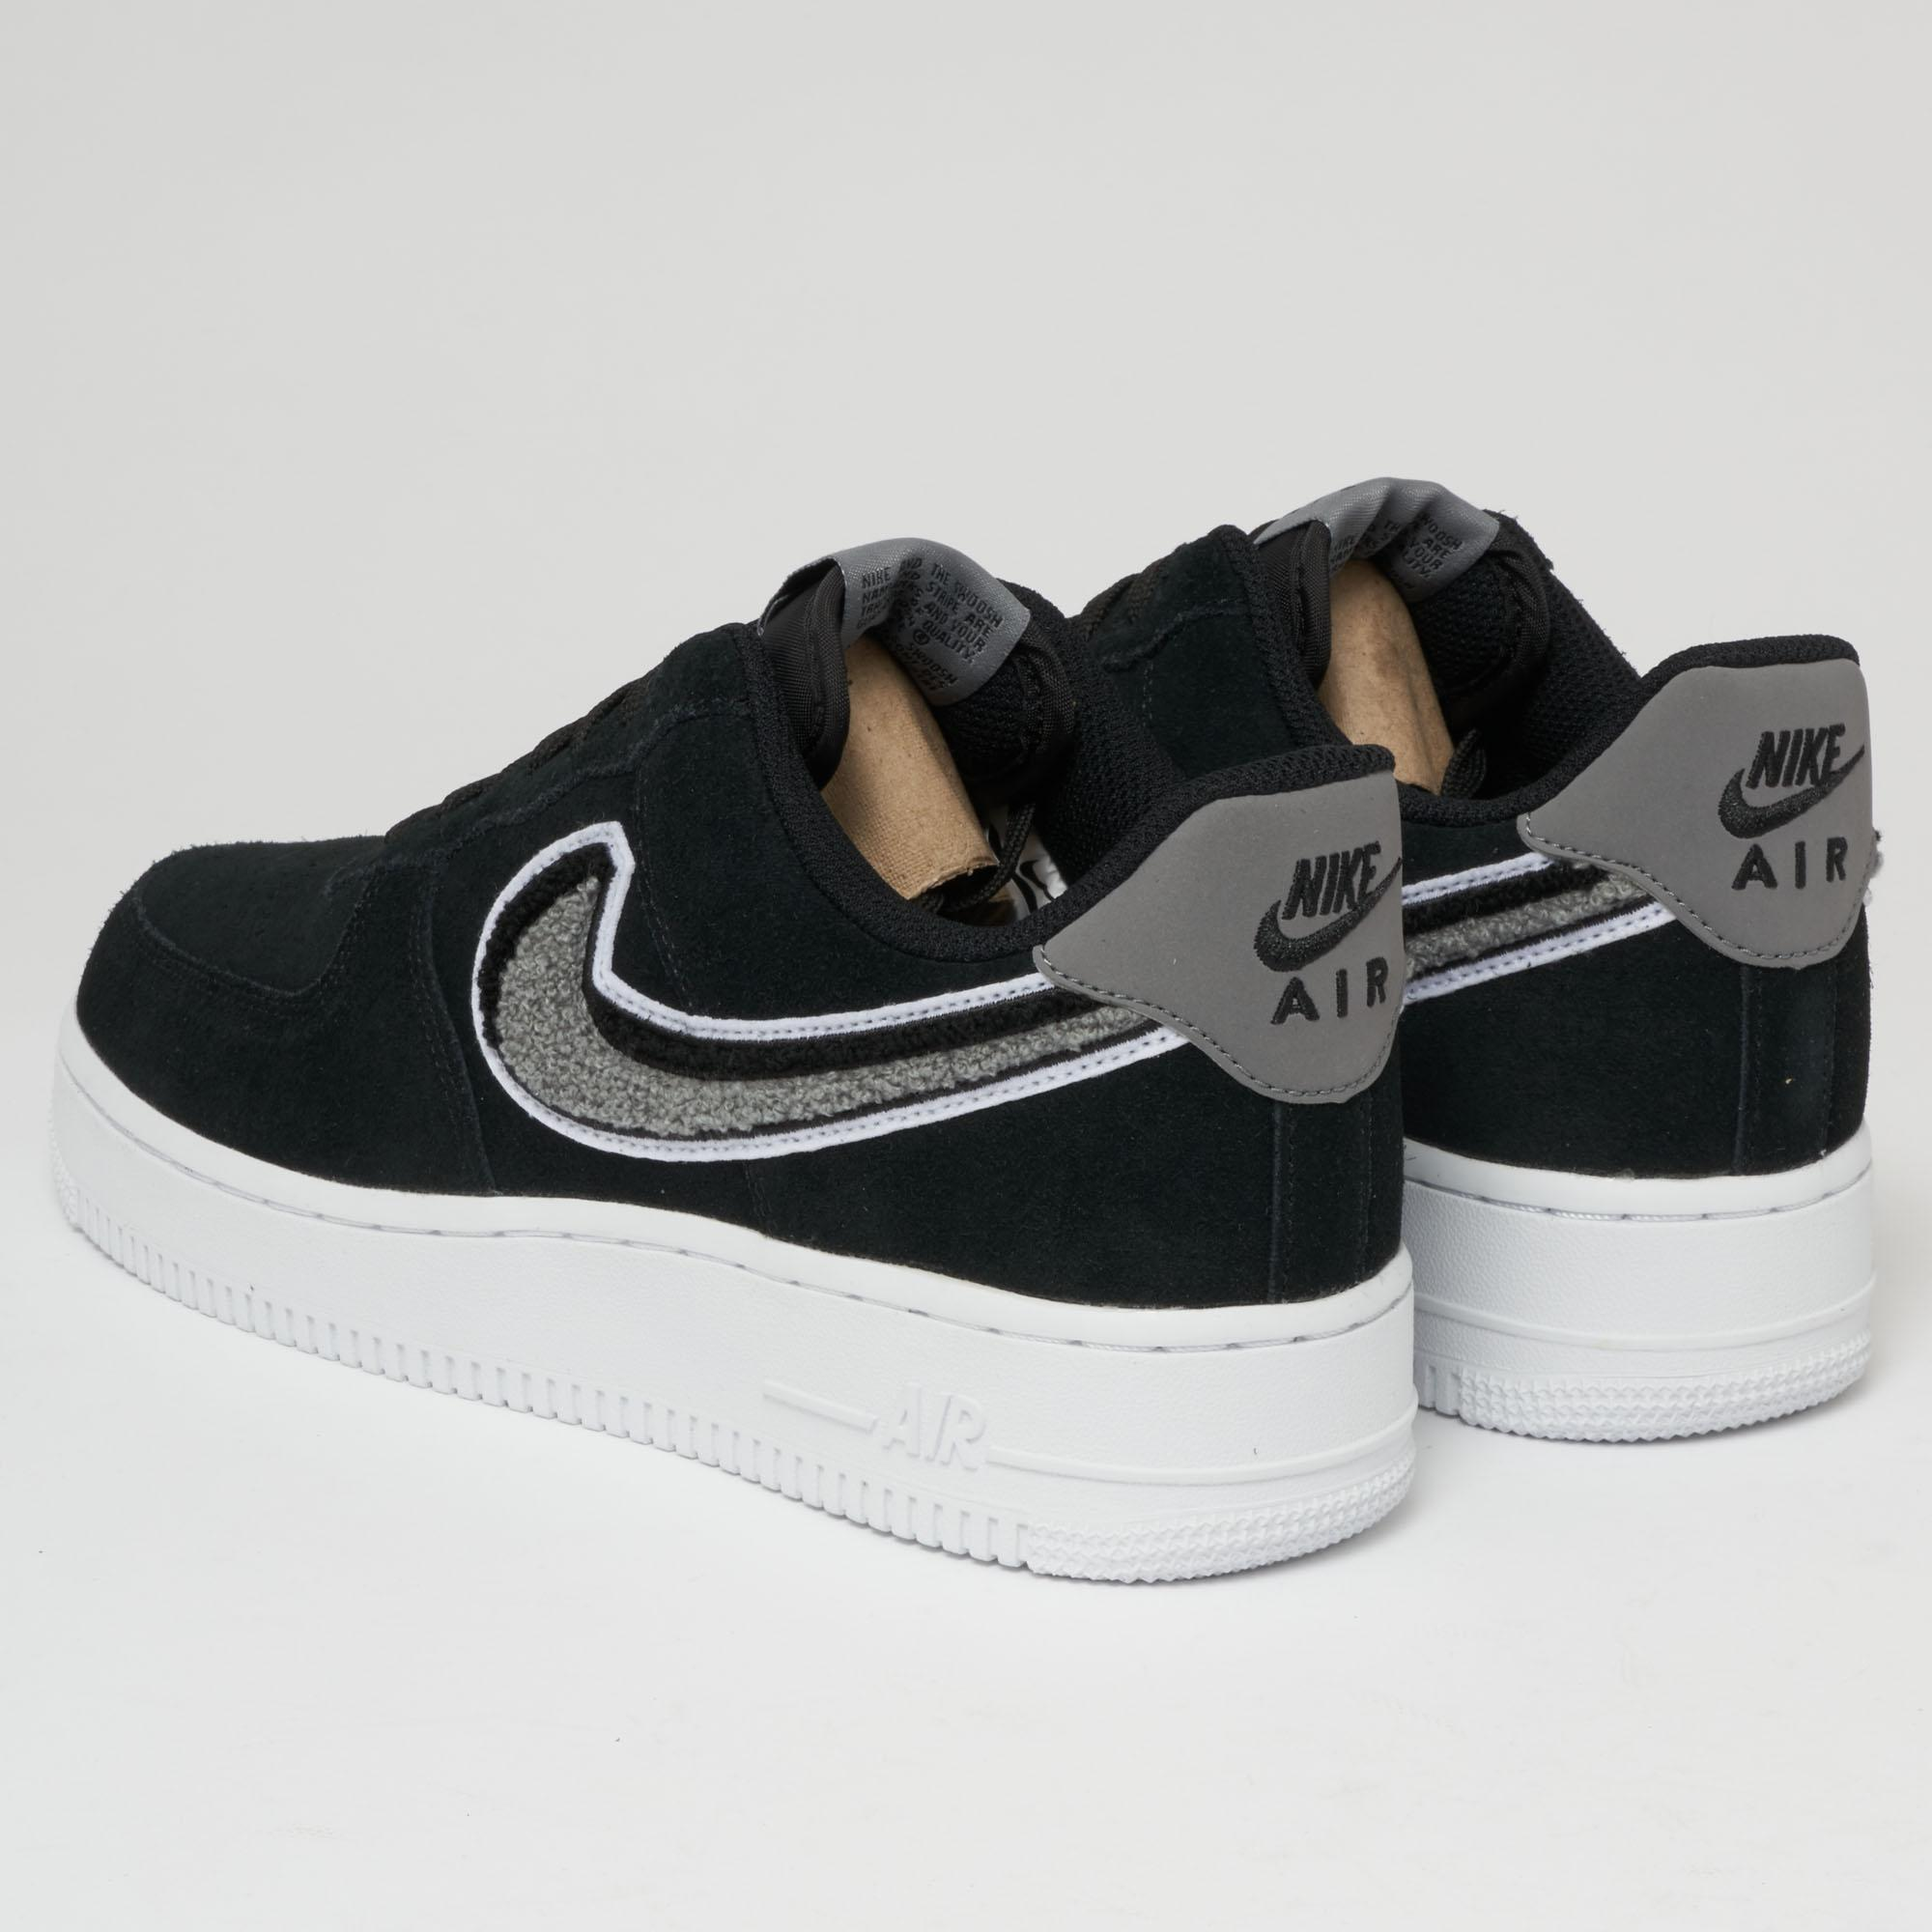 separation shoes 9489a 46e35 Nike Air Force 1  07 Lv8 - Black, White   Cool Grey in Black for Men ...